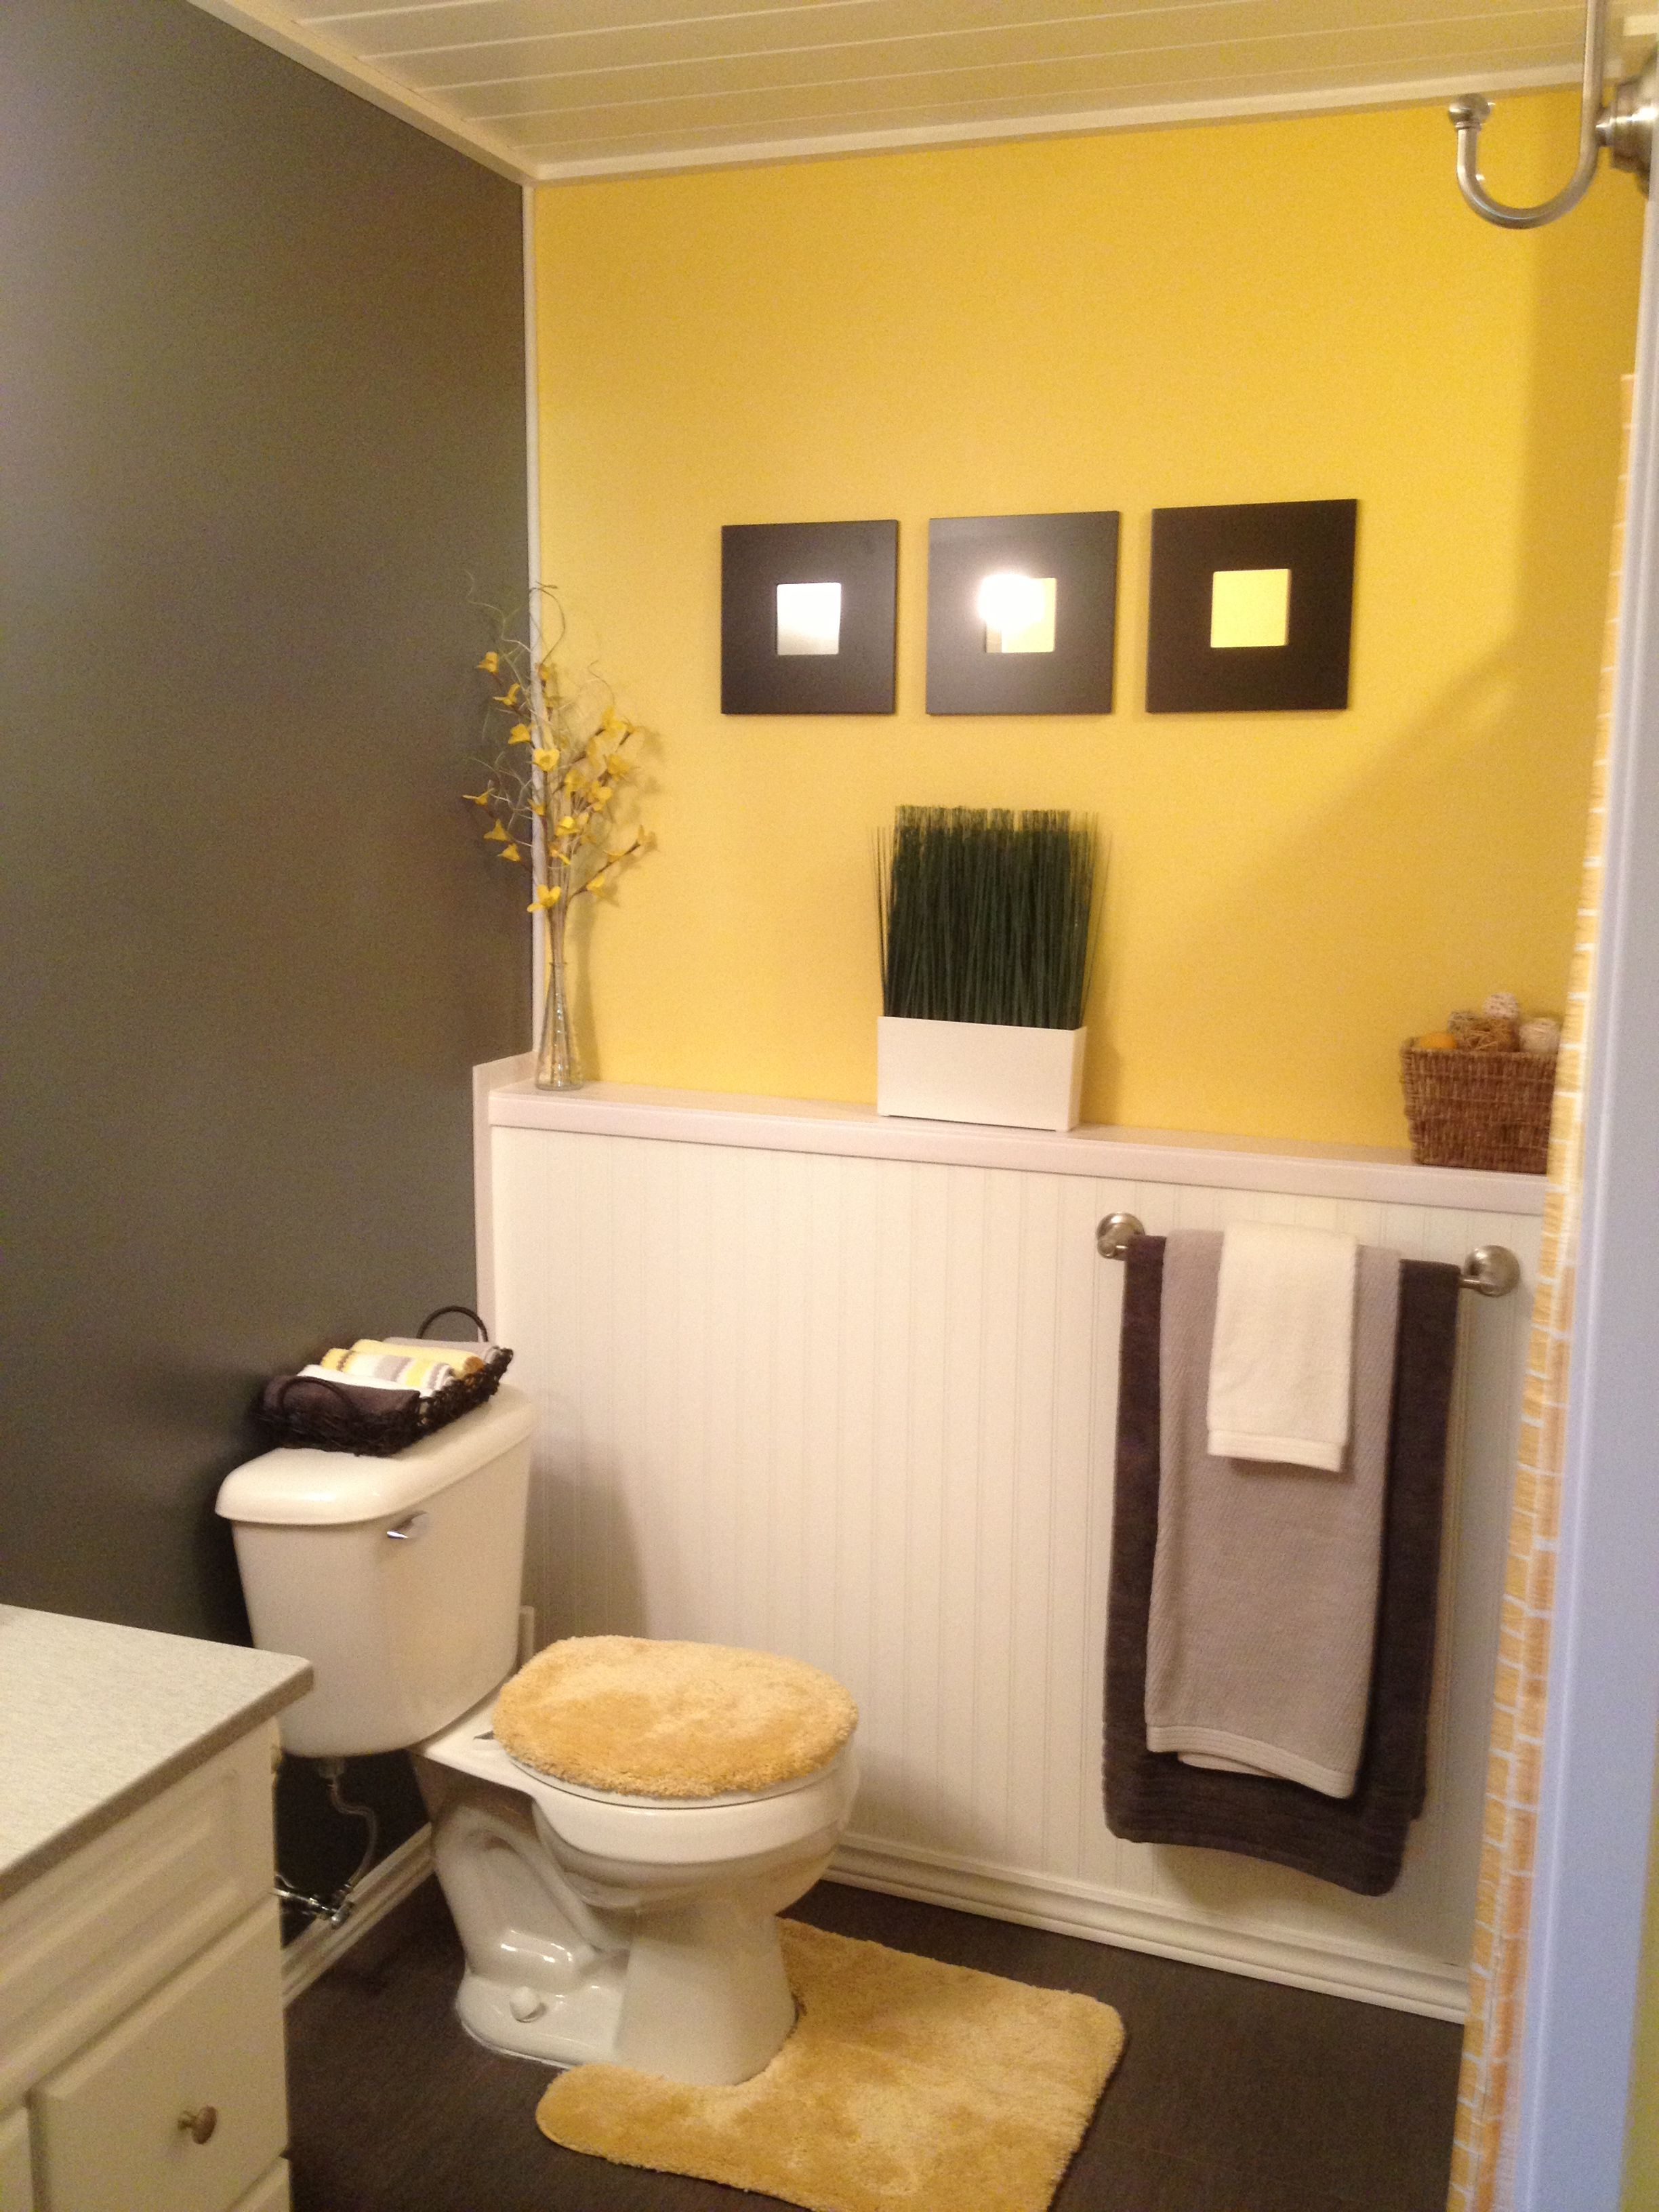 Pin By Emily Horn On For The Home Yellow Bathroom Decor Yellow